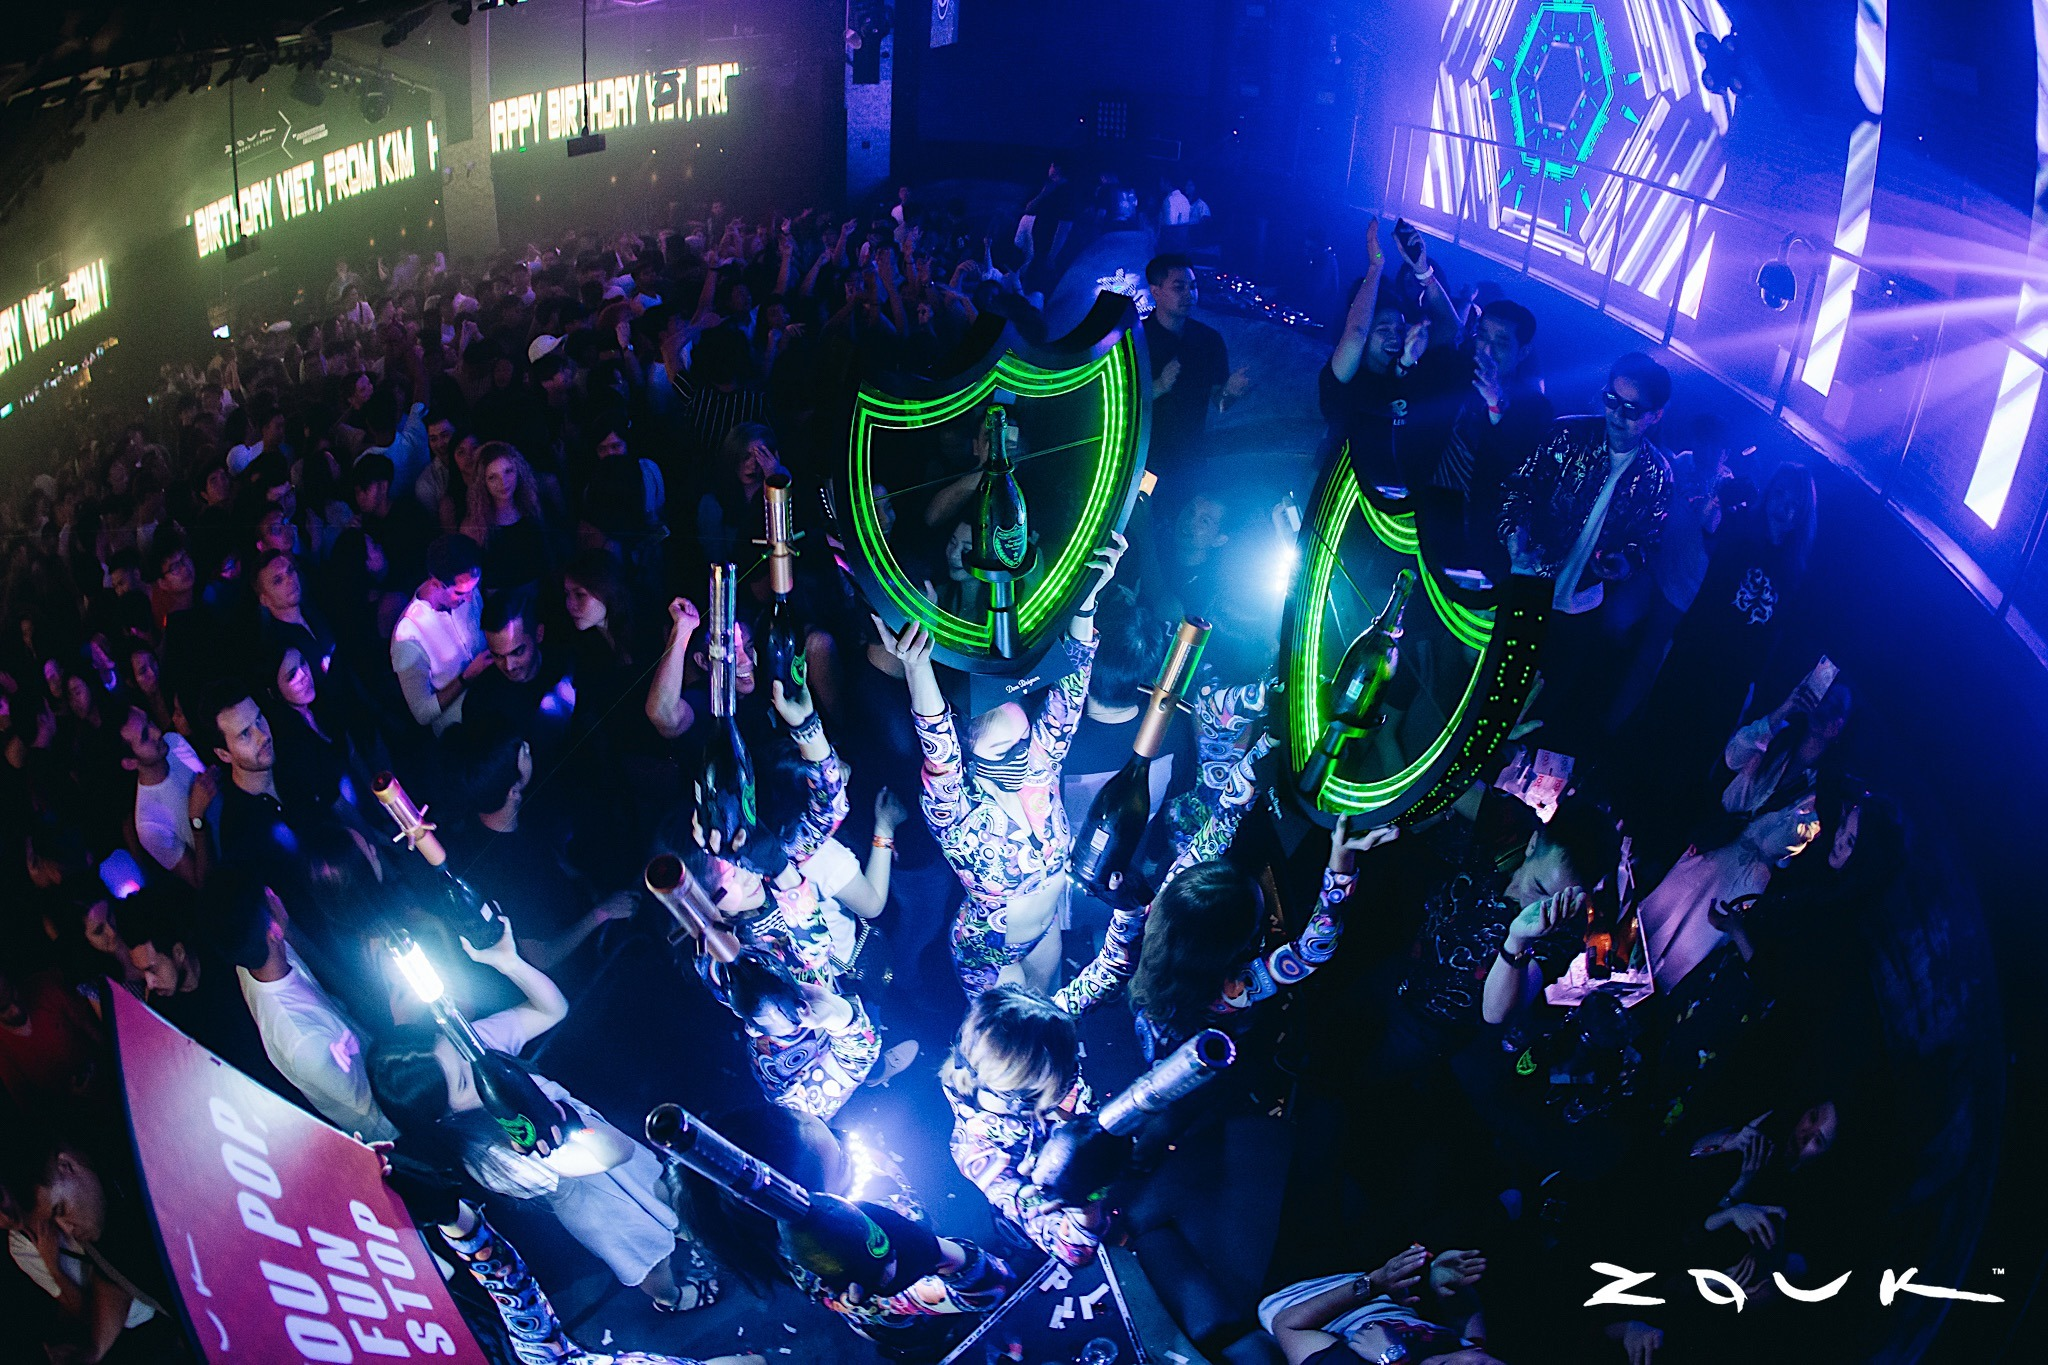 Zouk Singapore - Top Clubs in Singapore